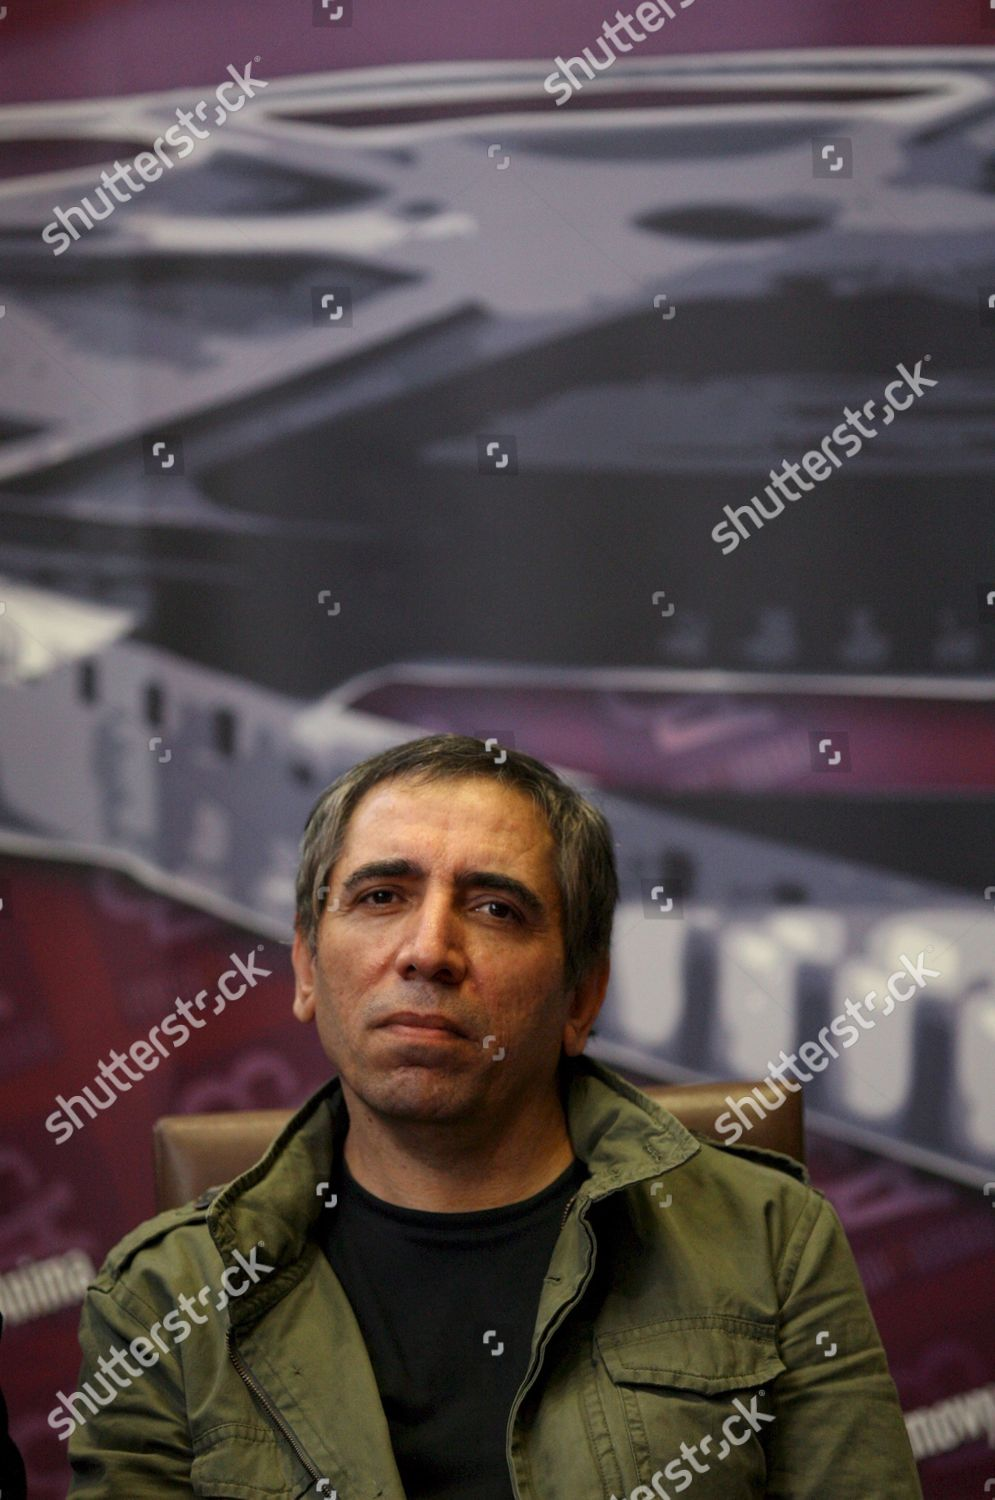 Iranian Director Mohsen Makhmalbaf Looks on During Editorial Stock